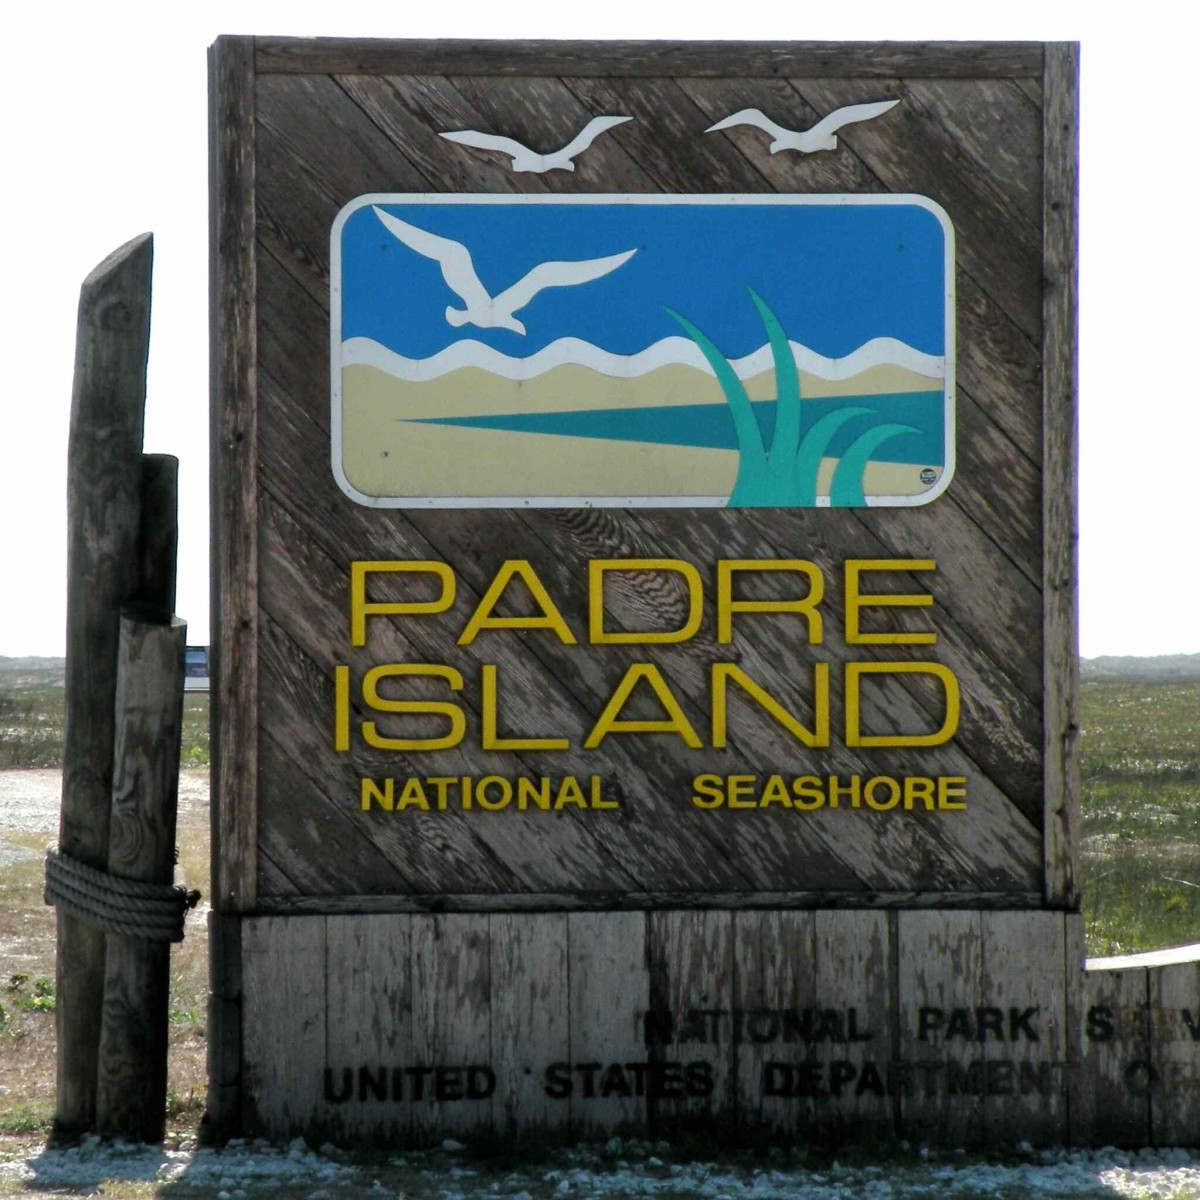 Entering Padre Island National Seashore on North Padre Island